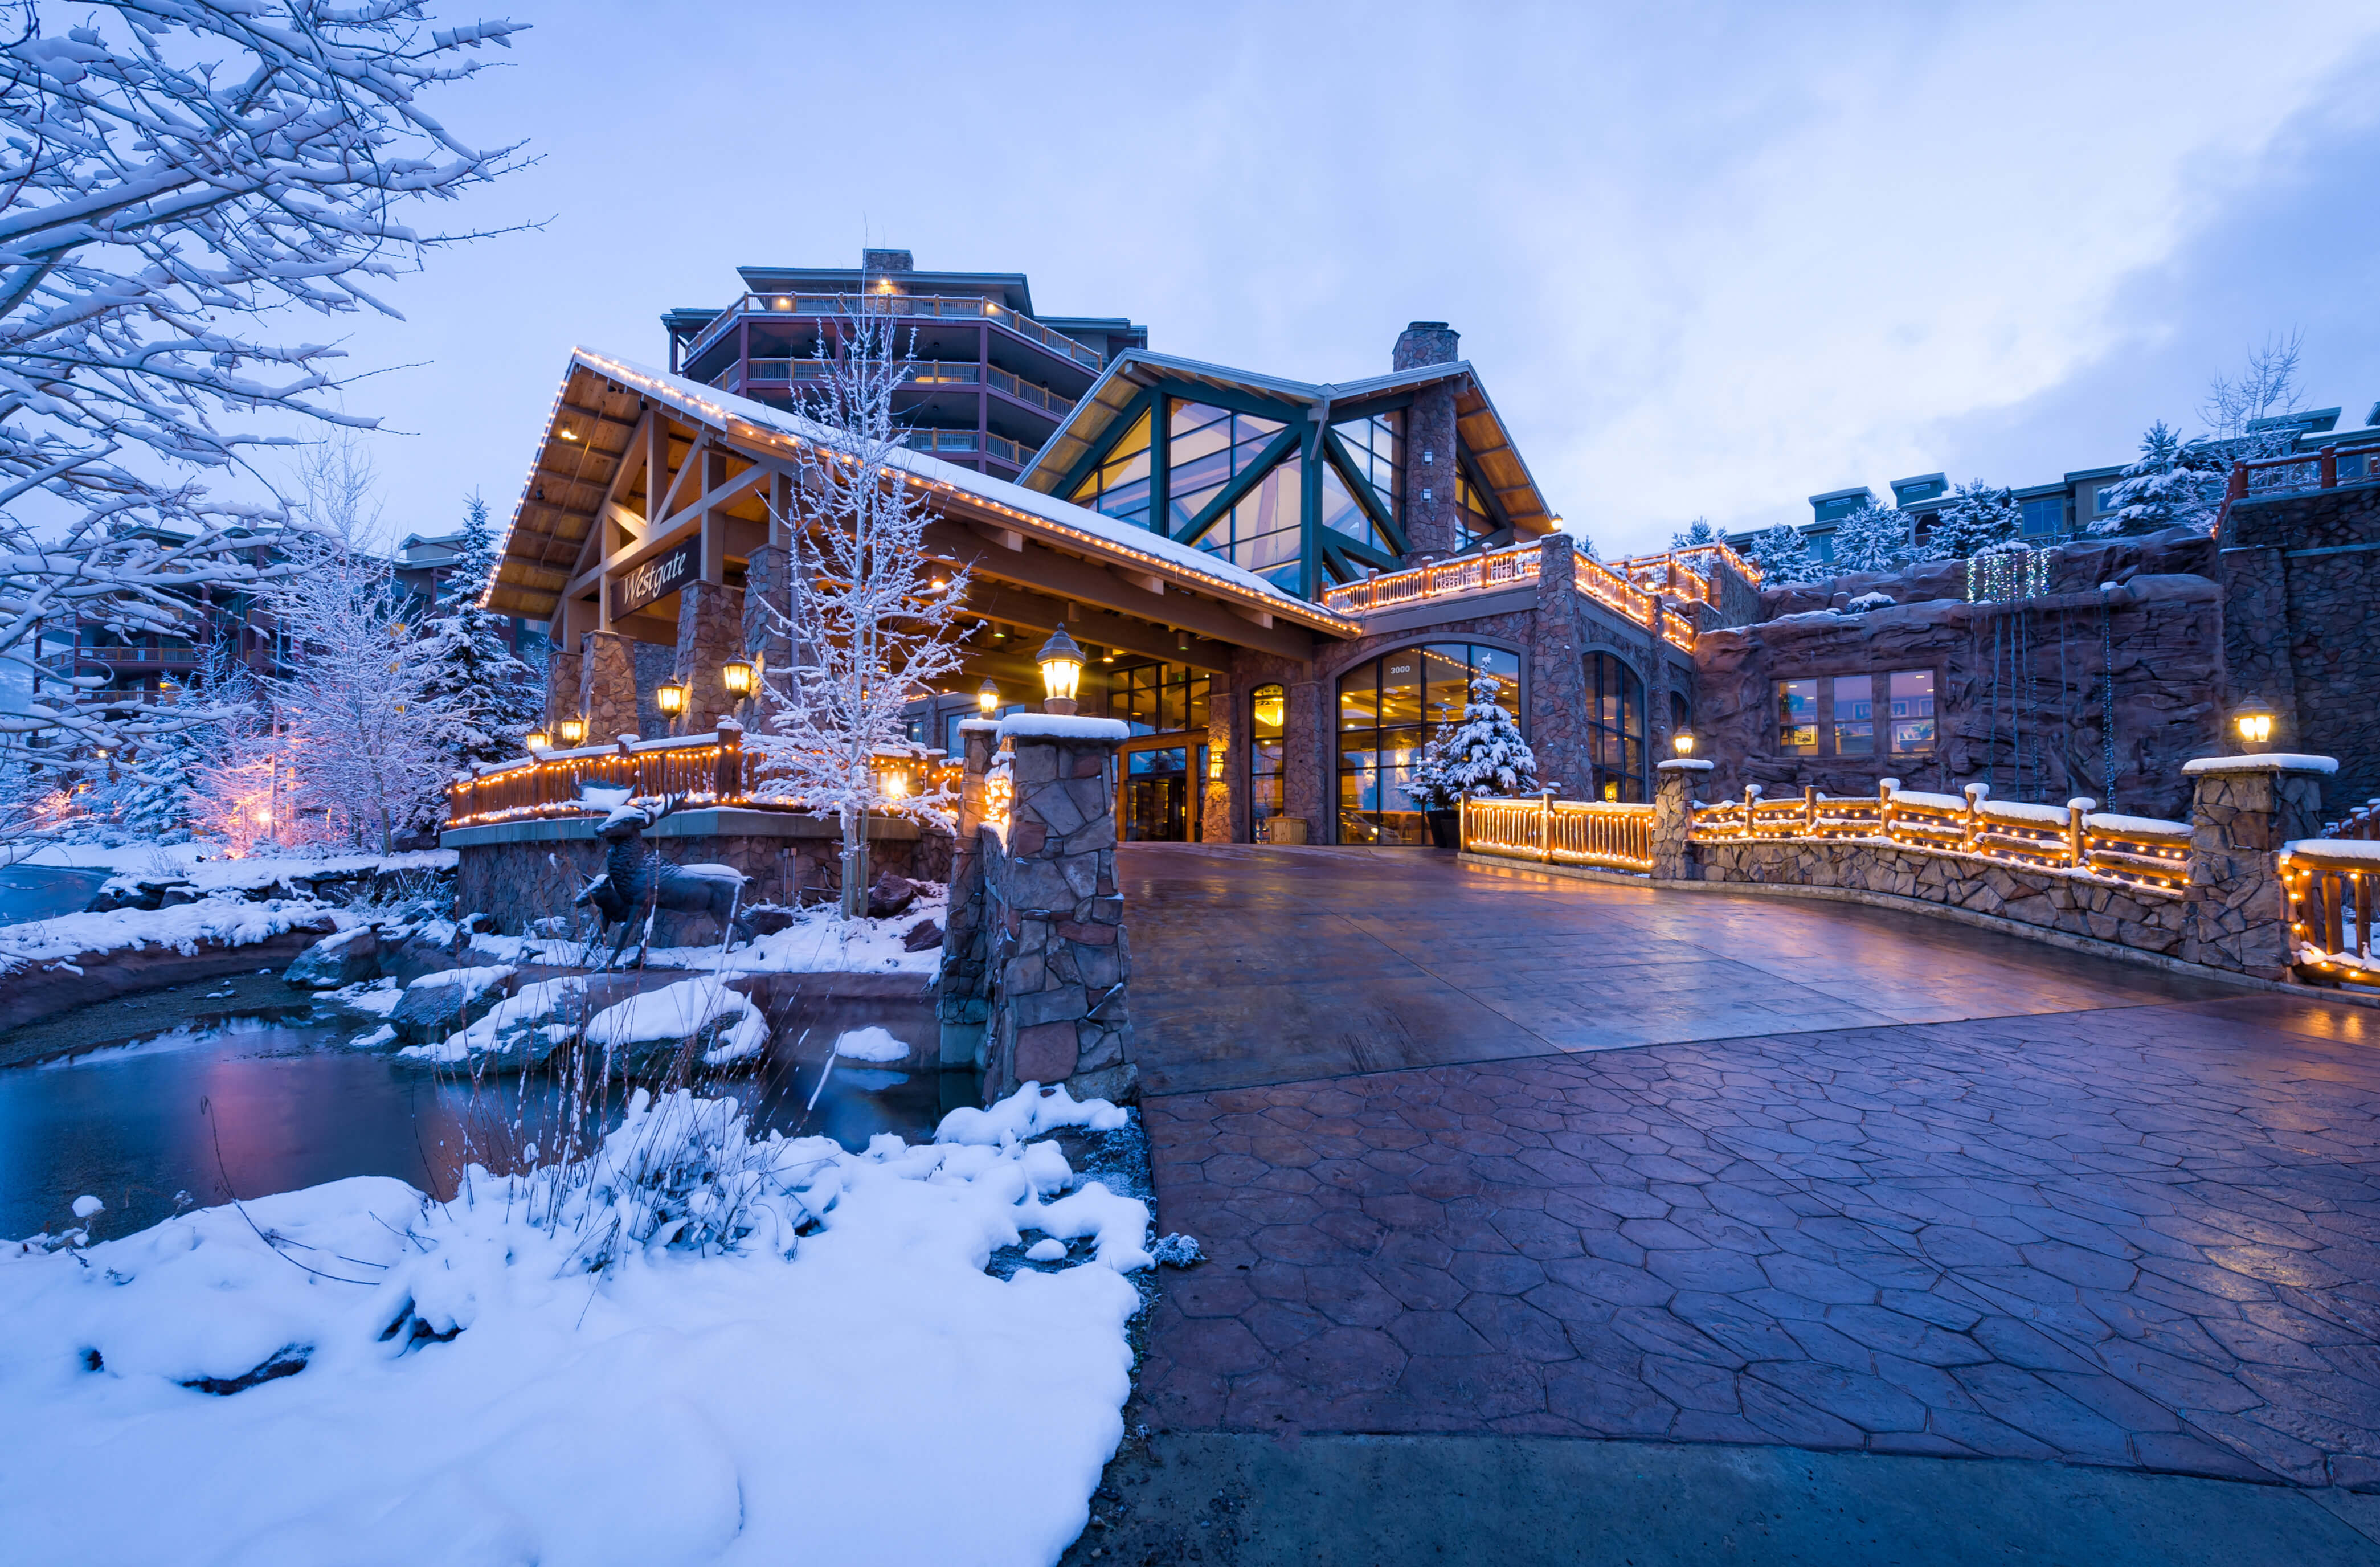 Park City, Utah Hotel and Ski Resort located near Park City Mountain | Resort in Winter